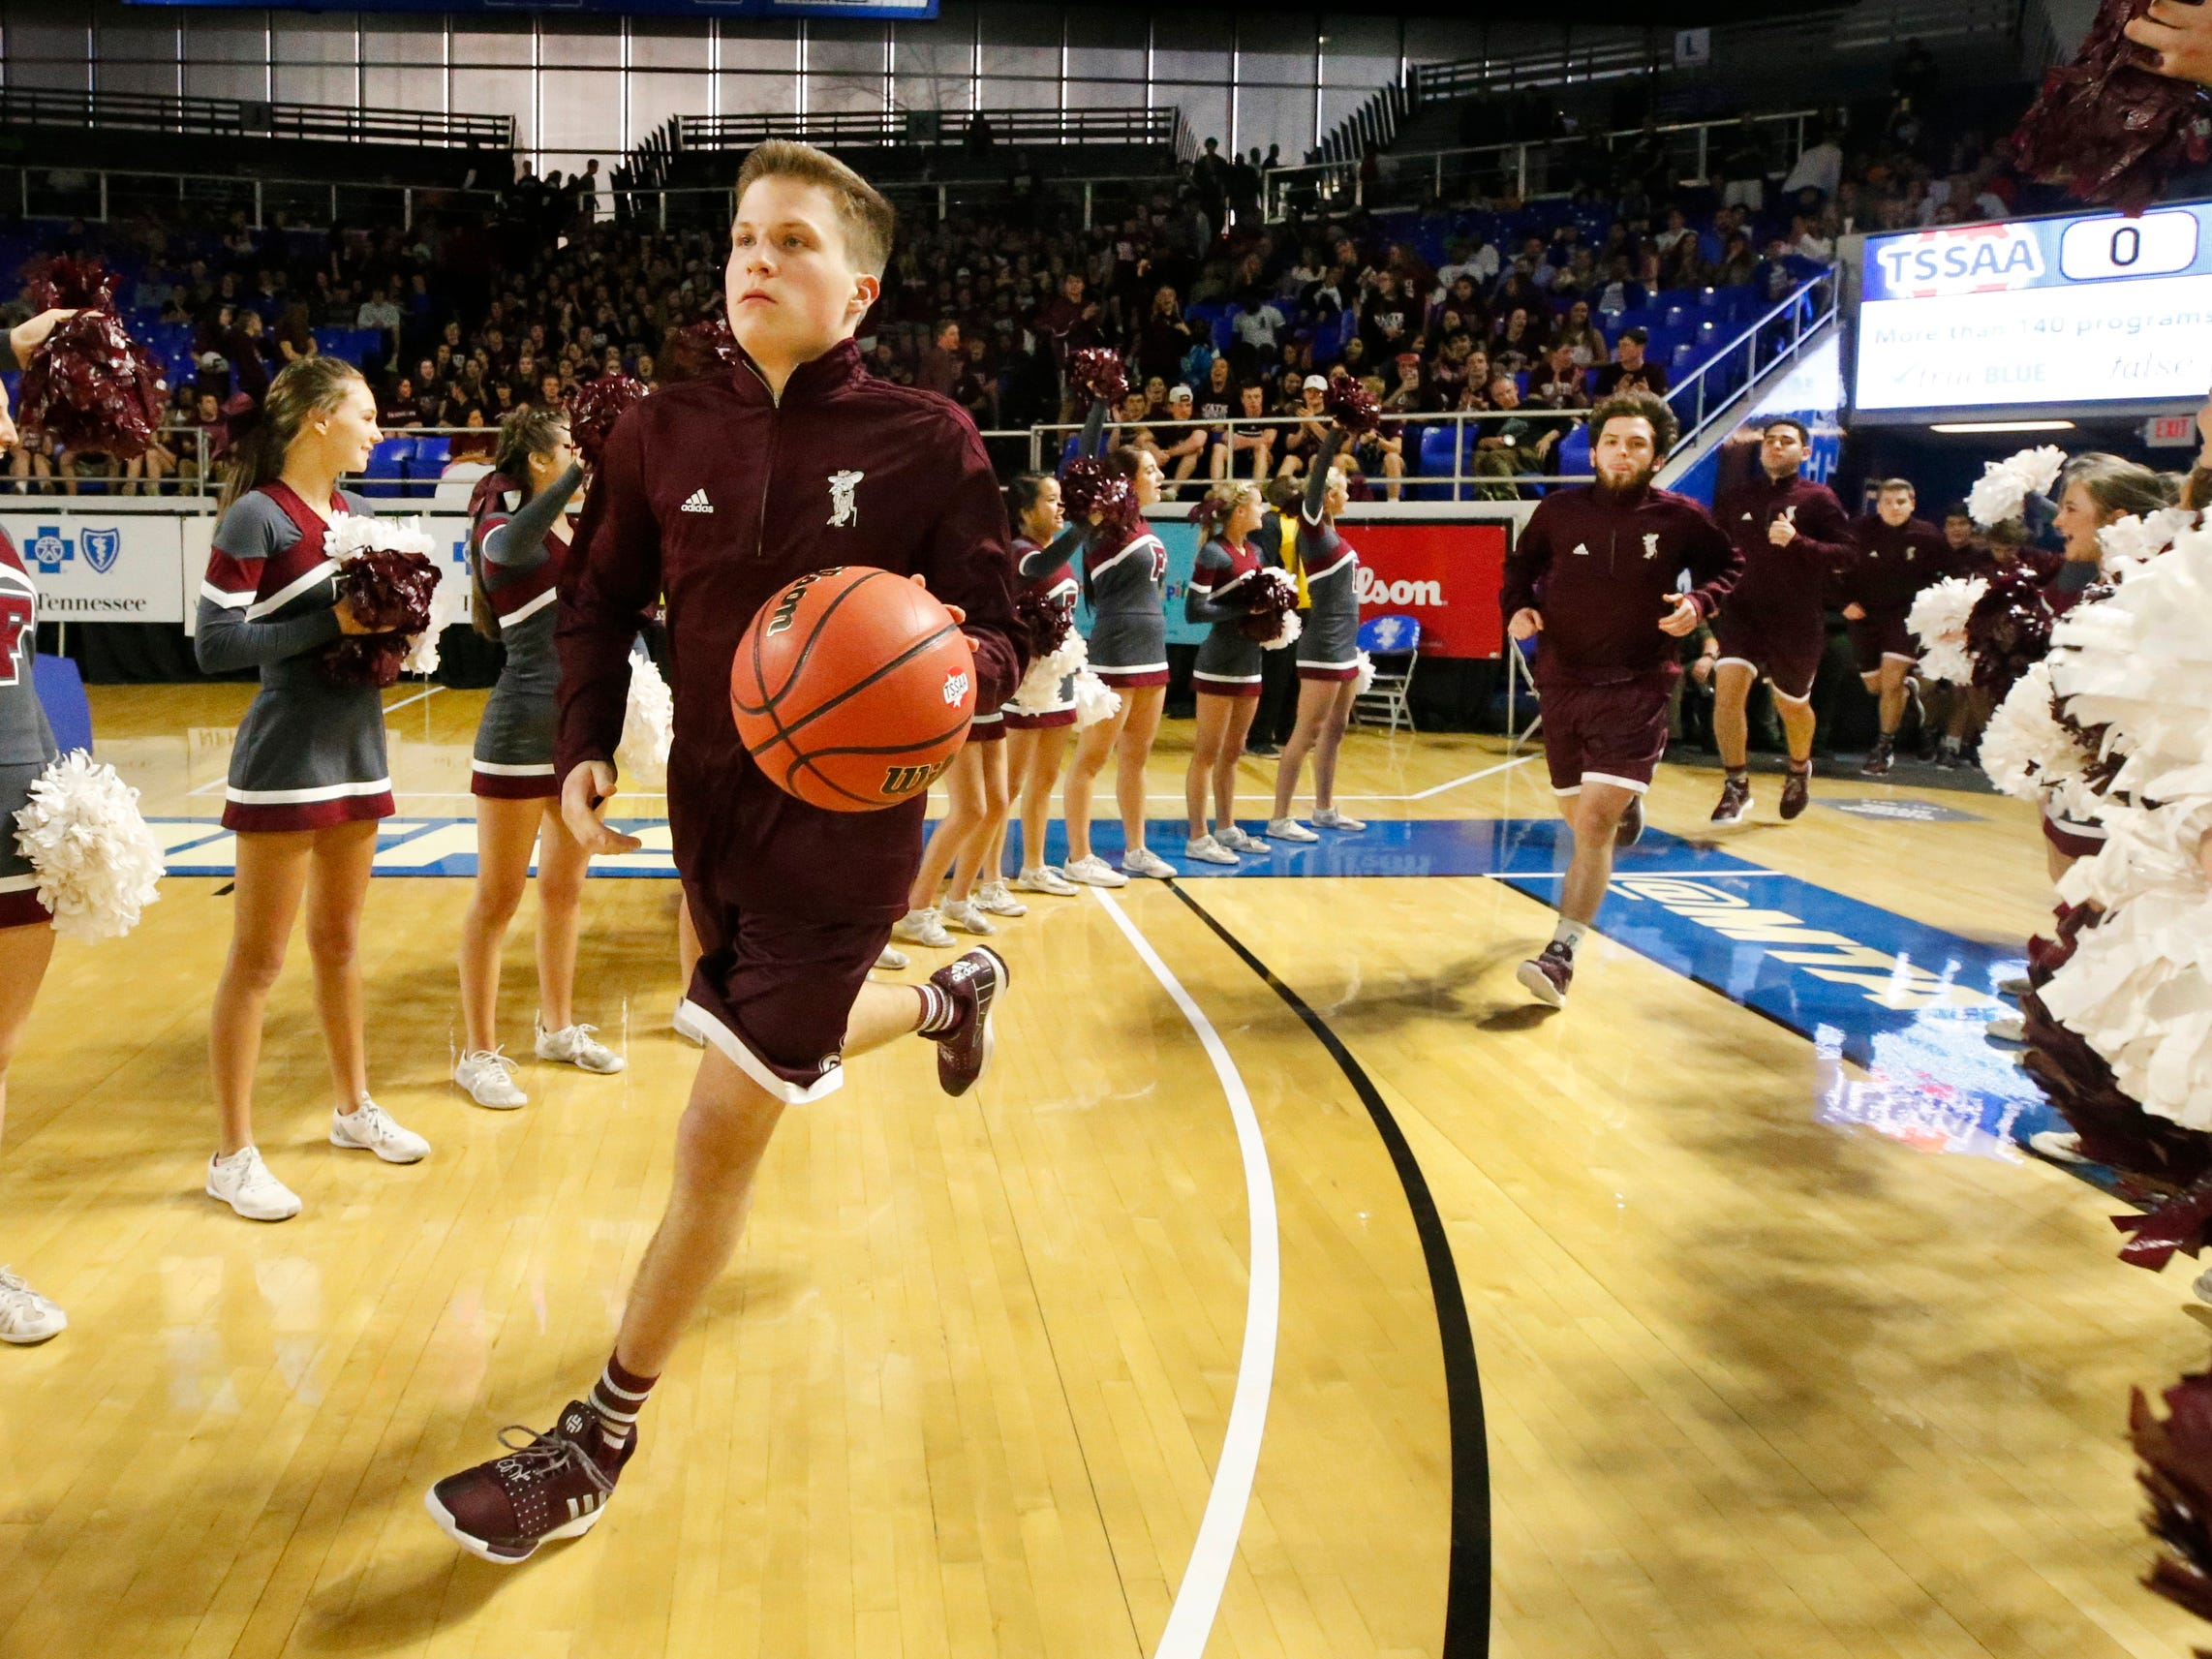 Franklin's Finlay Long (15) leads his team onto the court to warm-up before the quarterfinal round of the TSSAA Class AAA Boys State Tournament against Bearden, on Wednesday, March 13, 2019, at Murphy Center in Murfreesboro, Tenn.